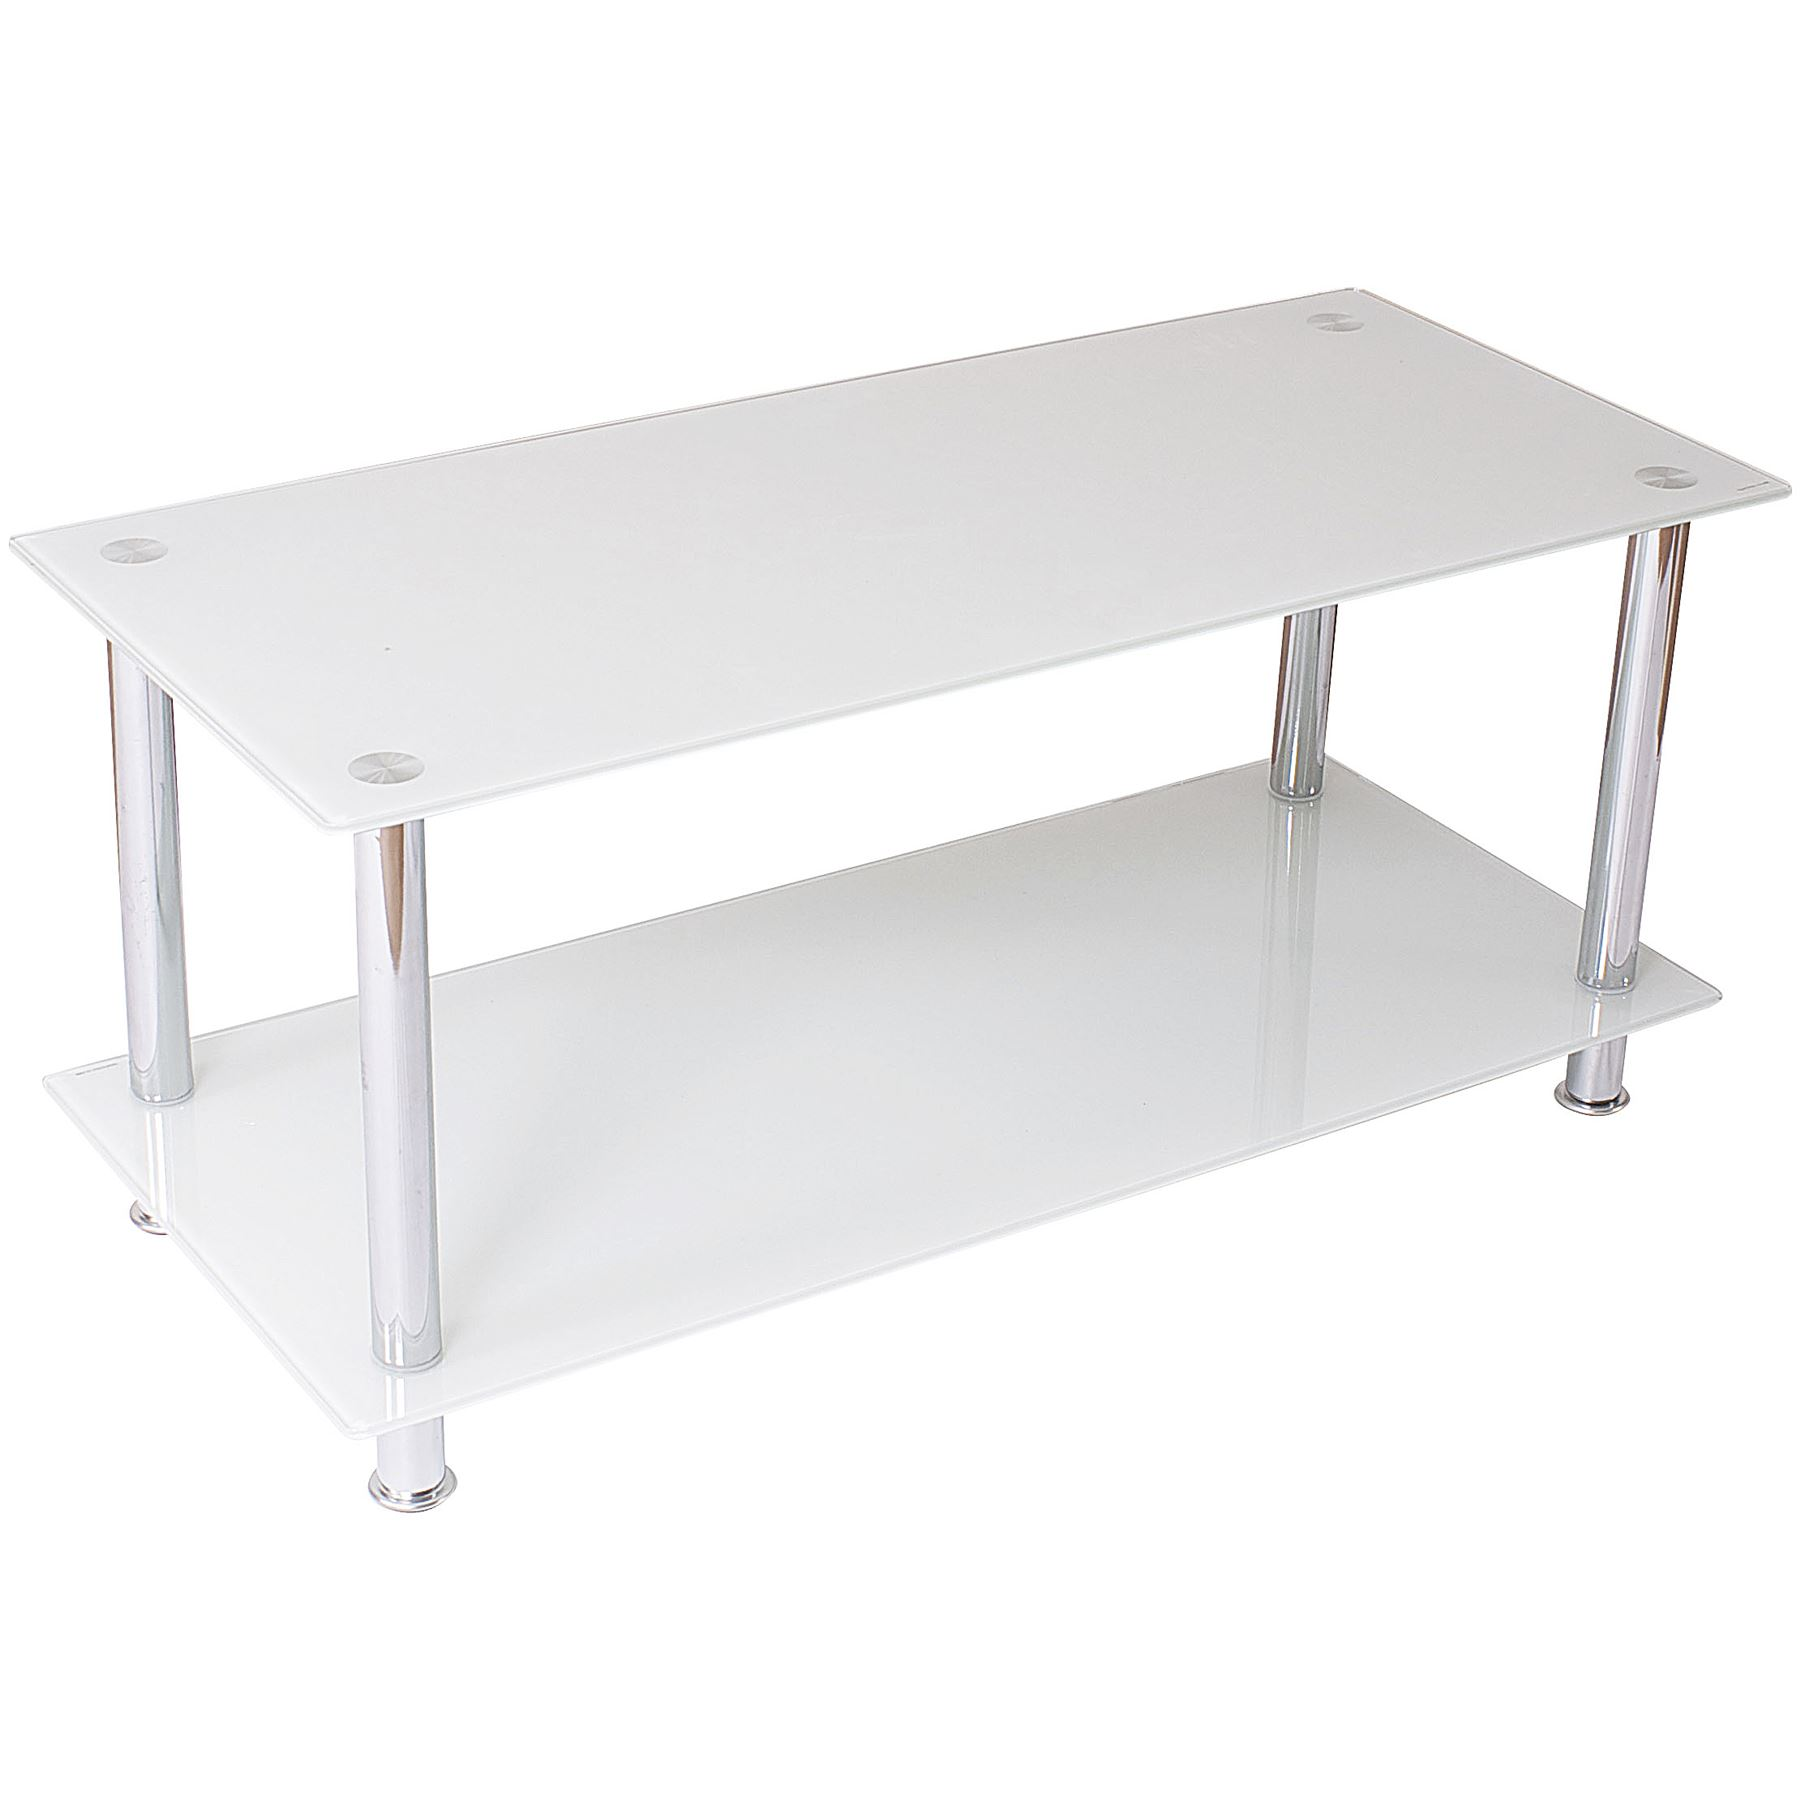 MODERN SATURN COFFEE SIDE TABLE CHROME LEGS TEMPERED GLASS